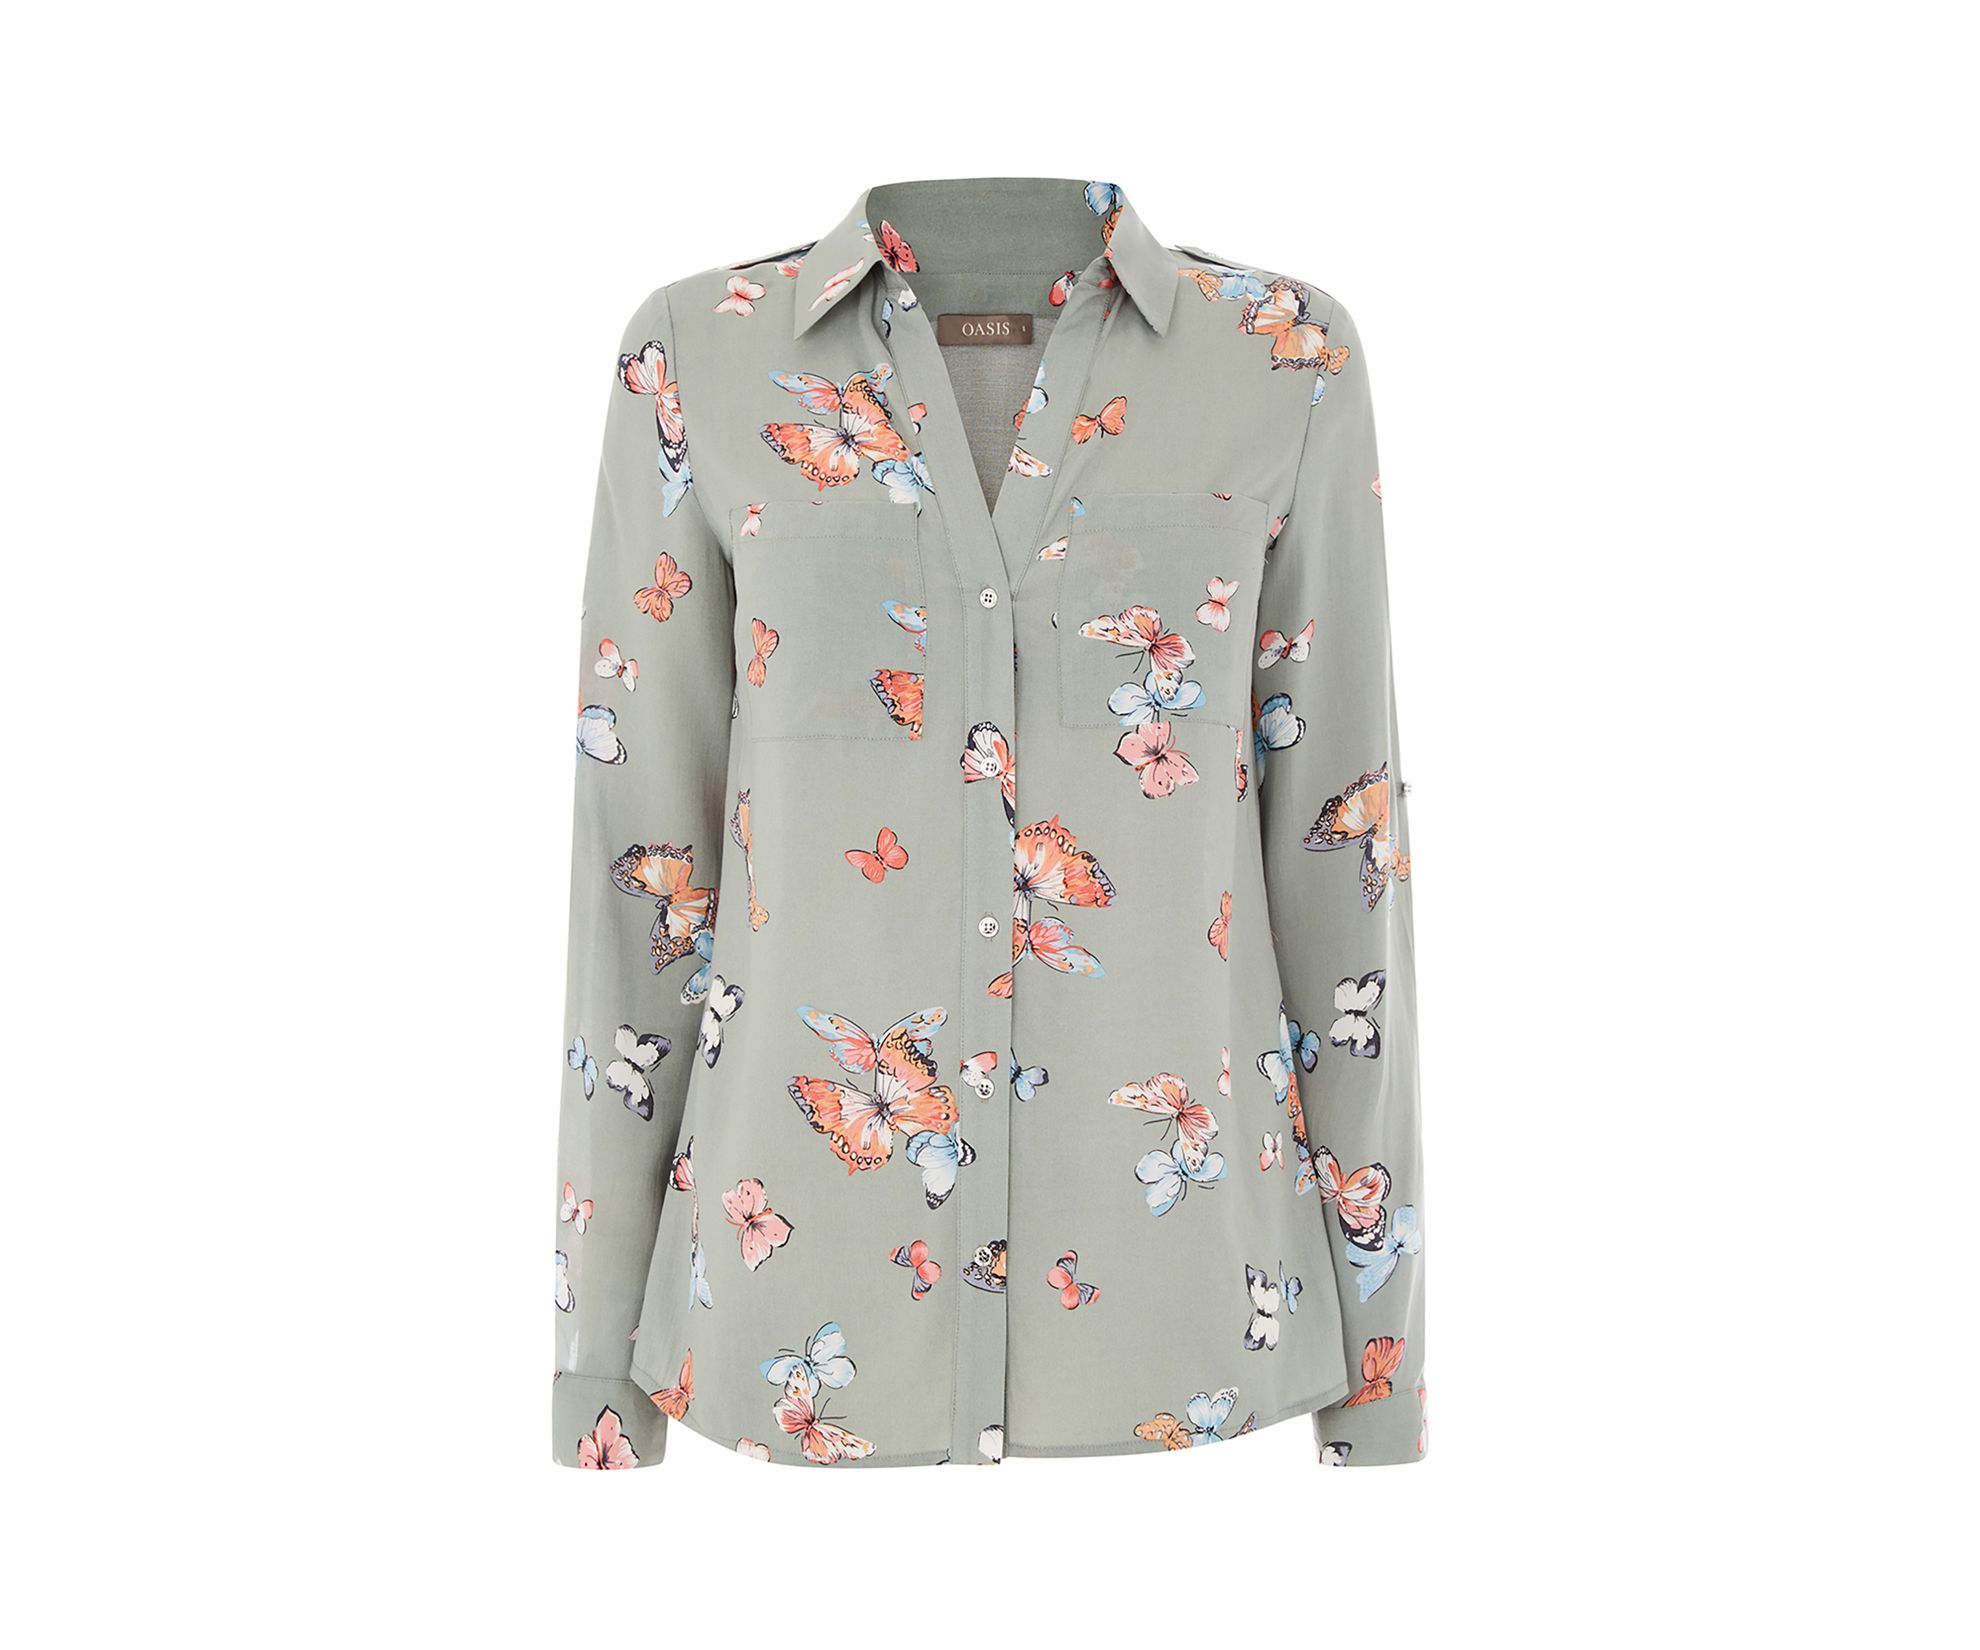 c98d2b9b9039 Oasis, CLUSTER BUTTERFLY SHIRT Khaki   My Style   Butterfly shirts ...